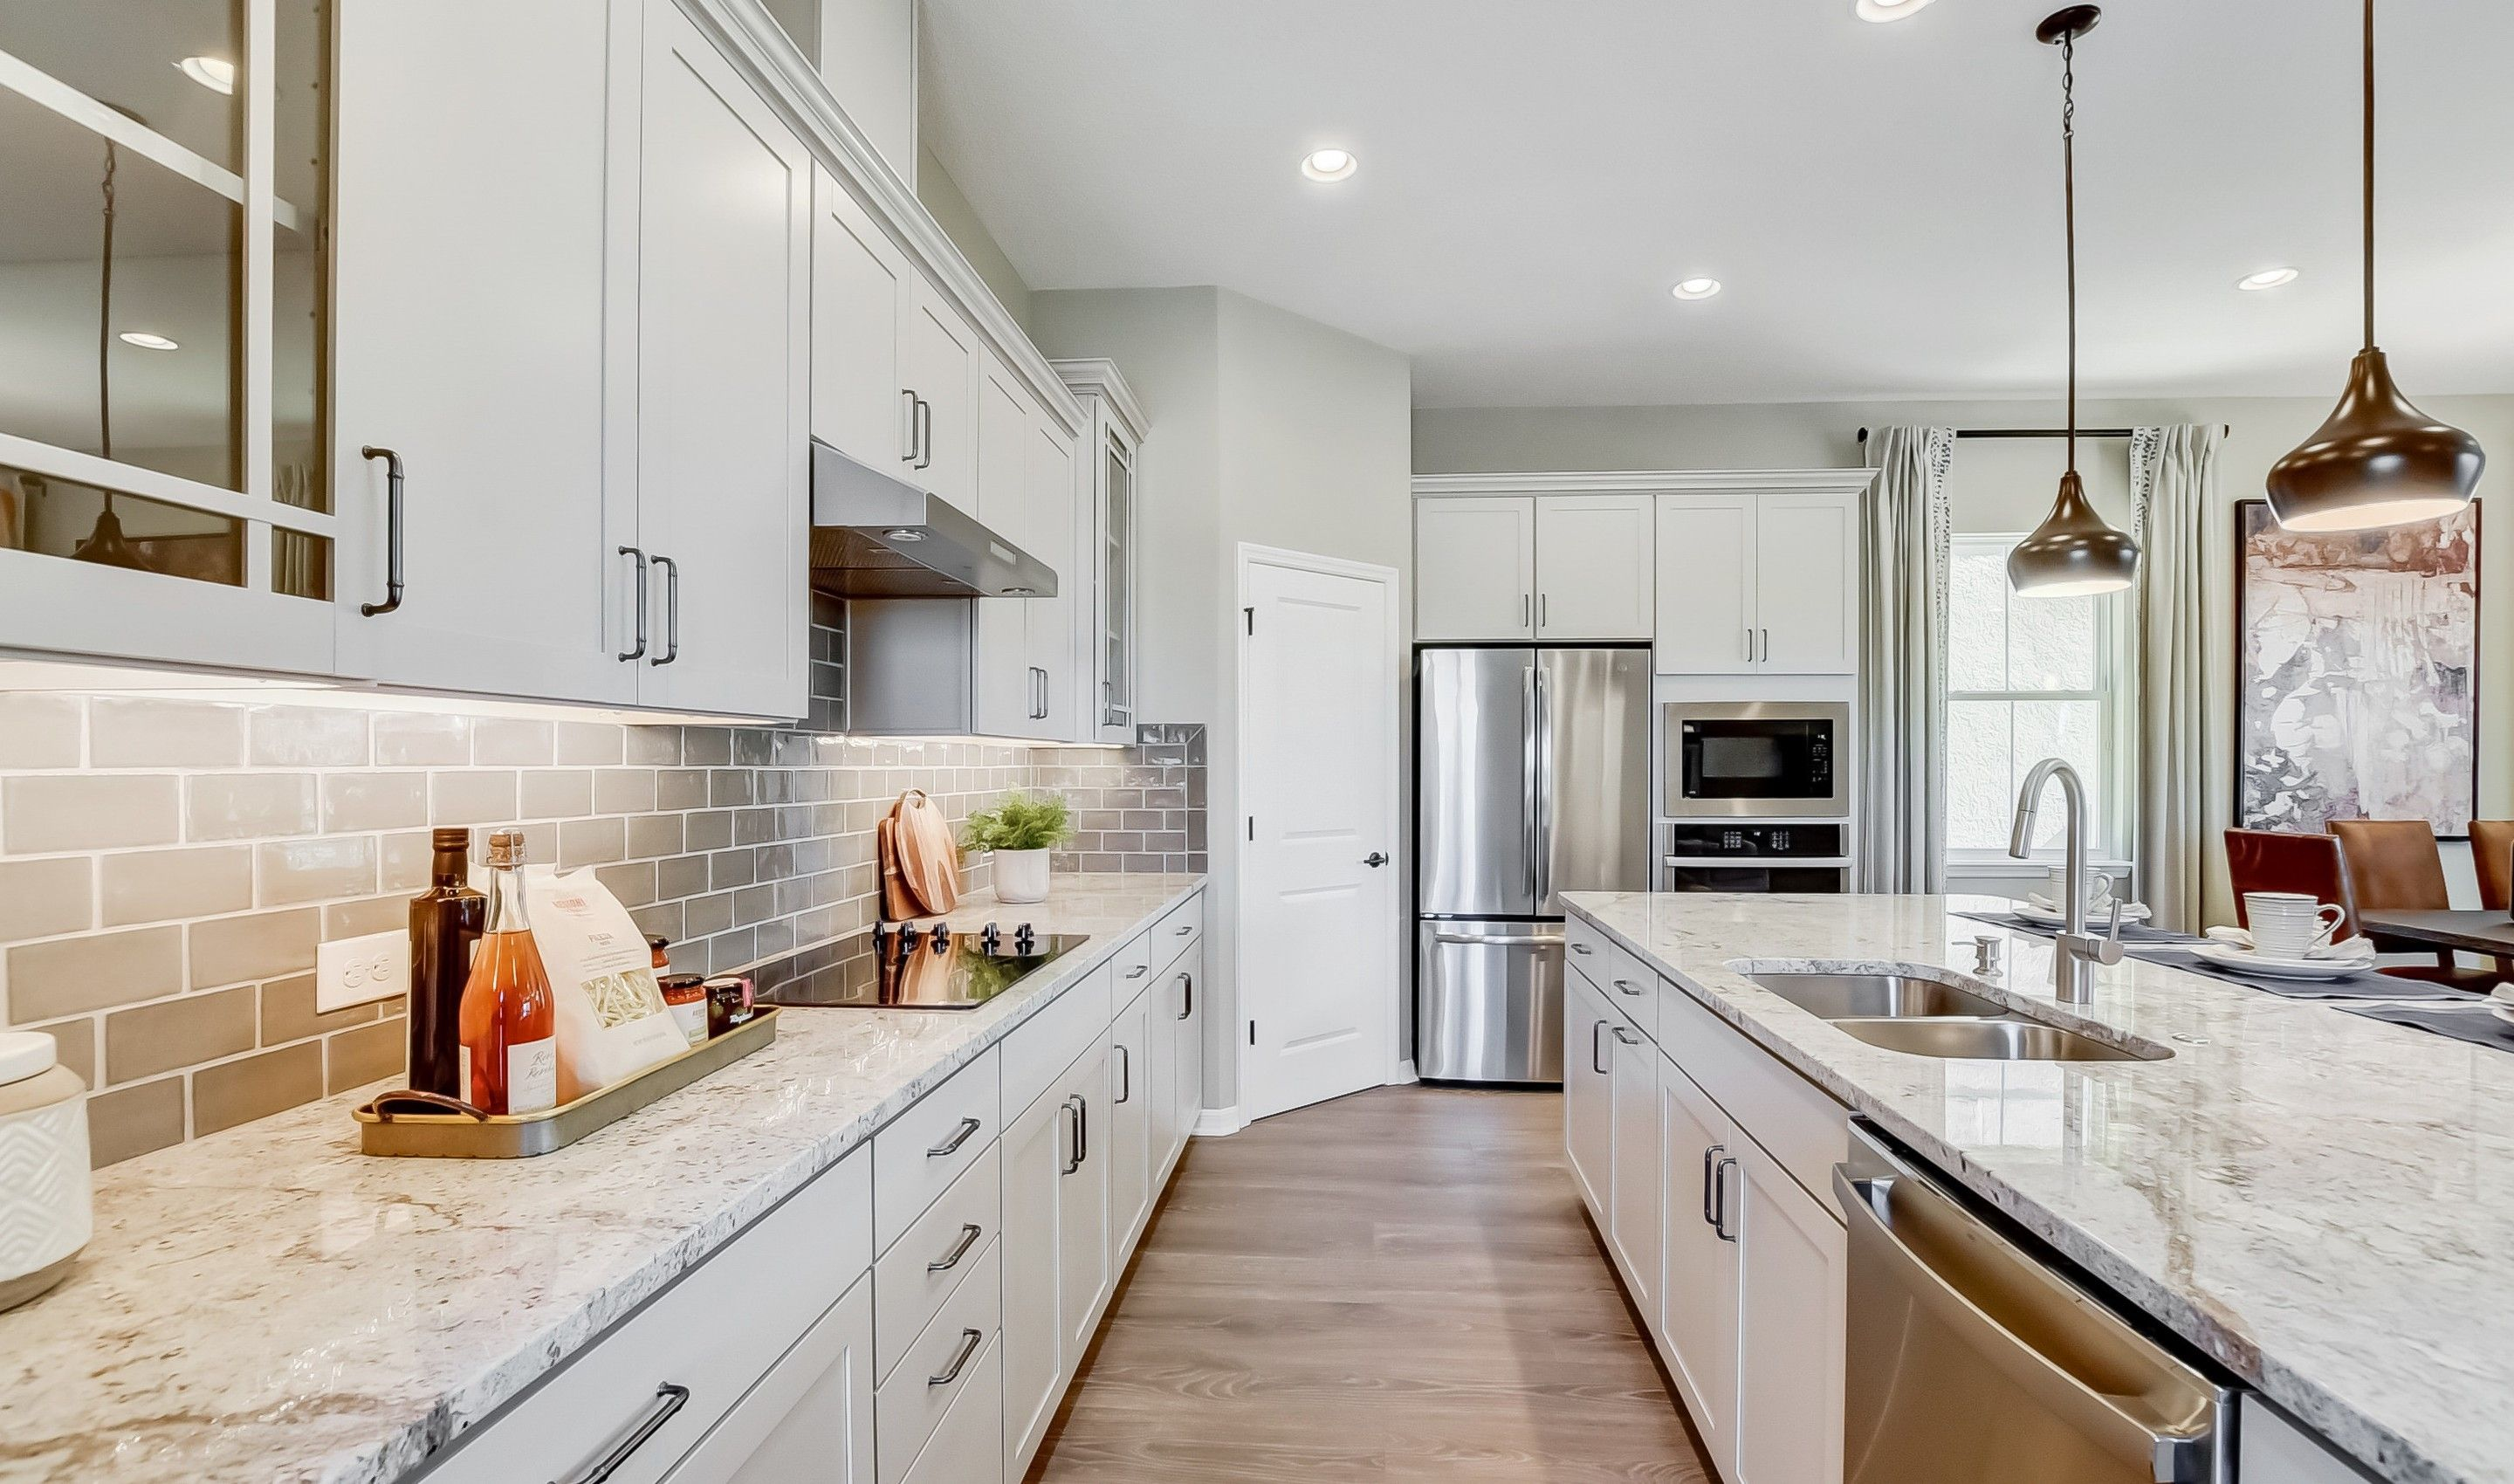 Kitchen featured in the Tessa By K. Hovnanian® Homes in Orlando, FL